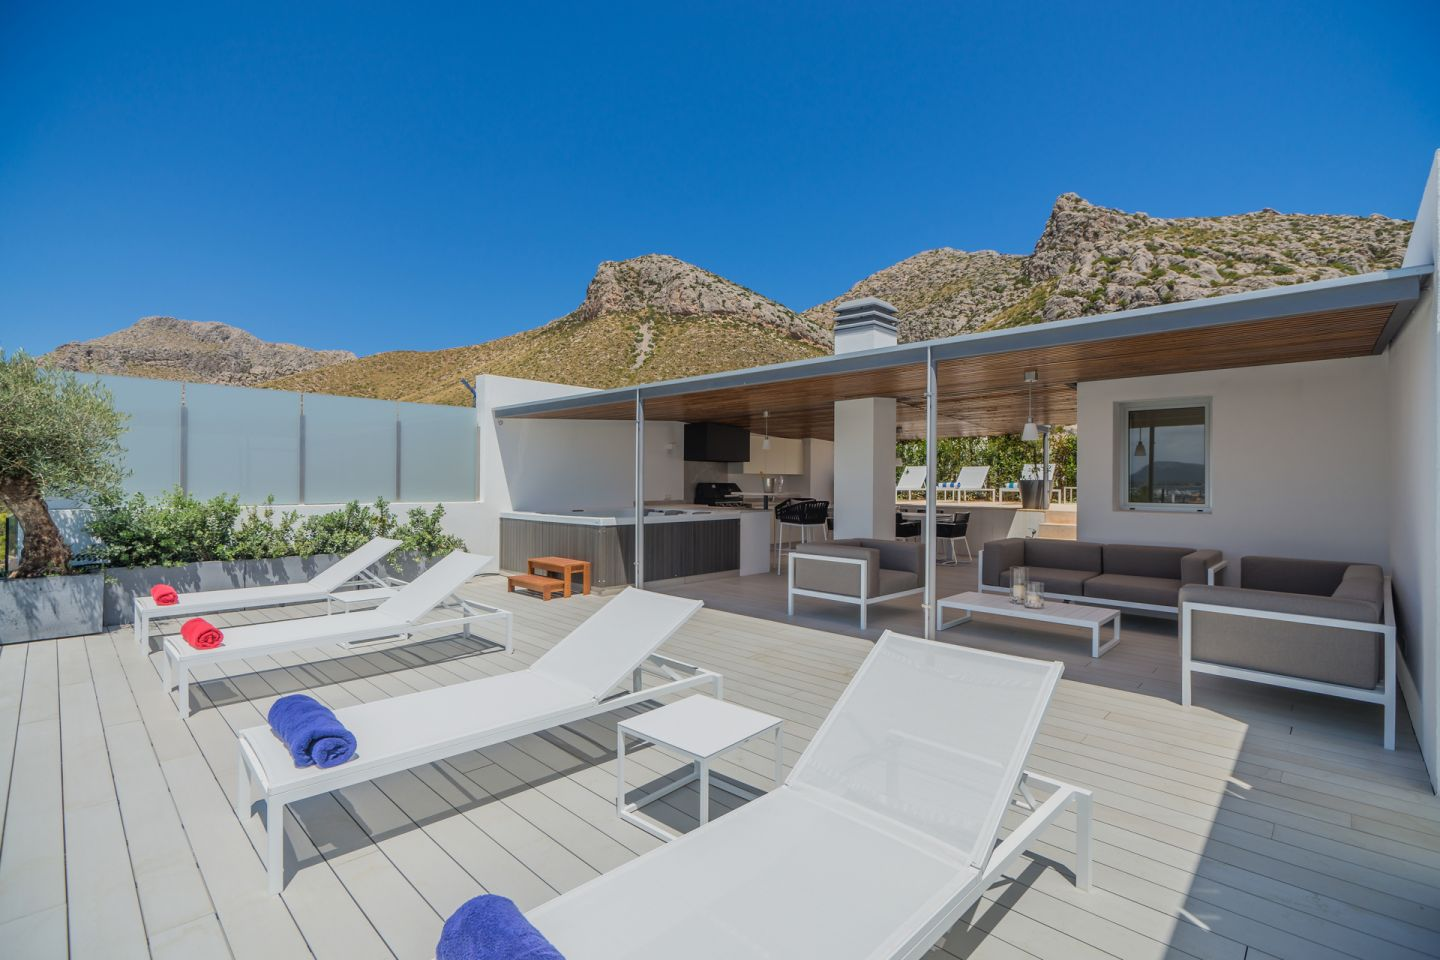 3 Bed Penthouse for sale in PUERTO POLLENSA 3